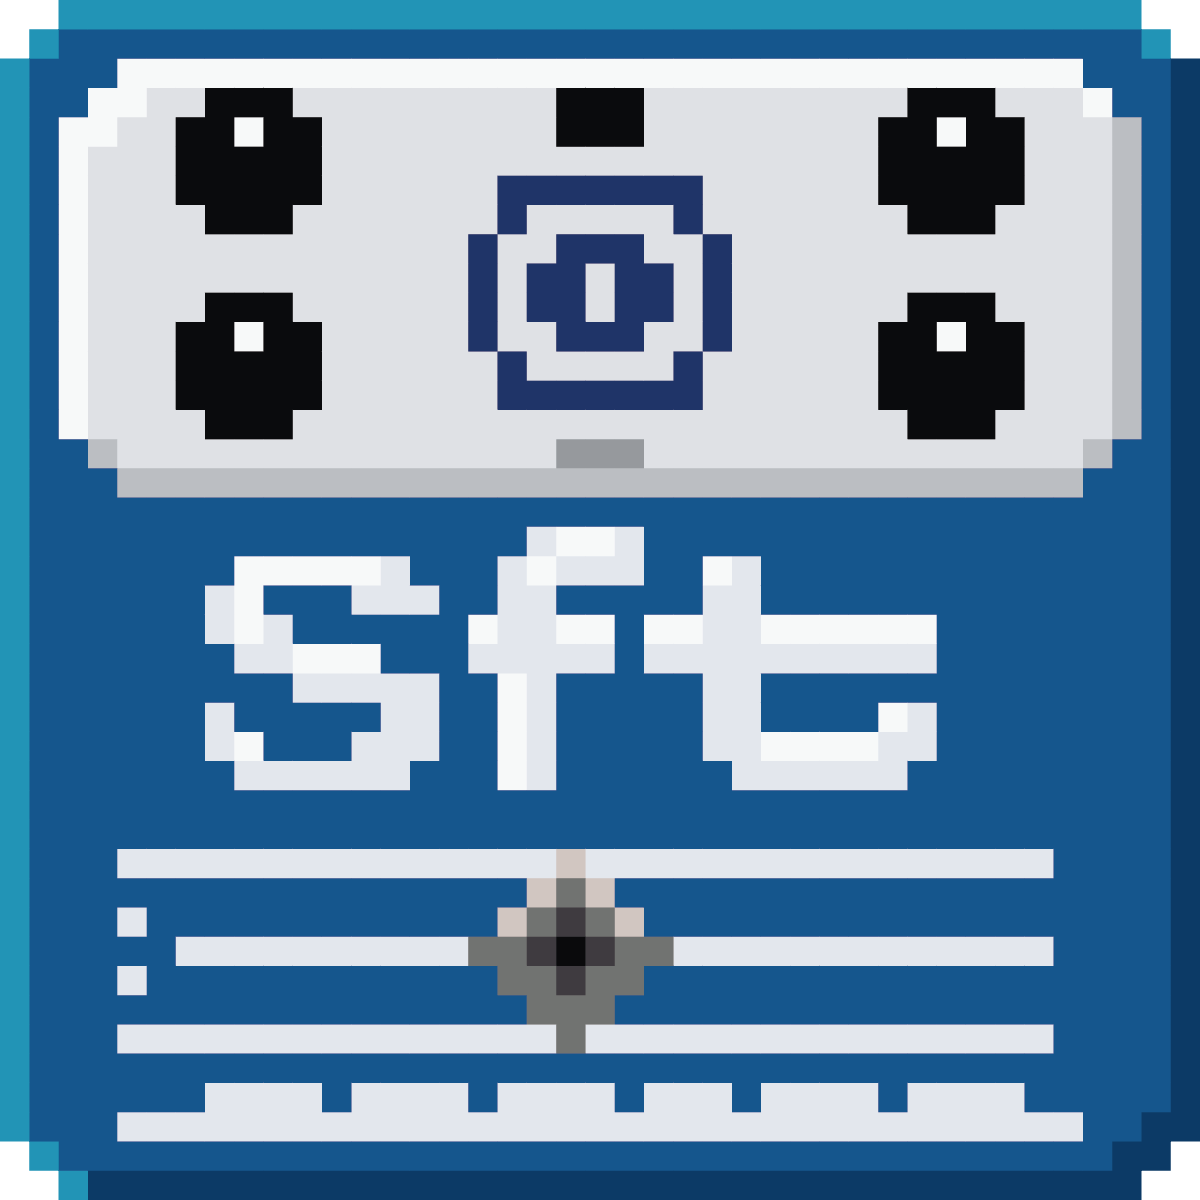 SFT_PEDAL.png